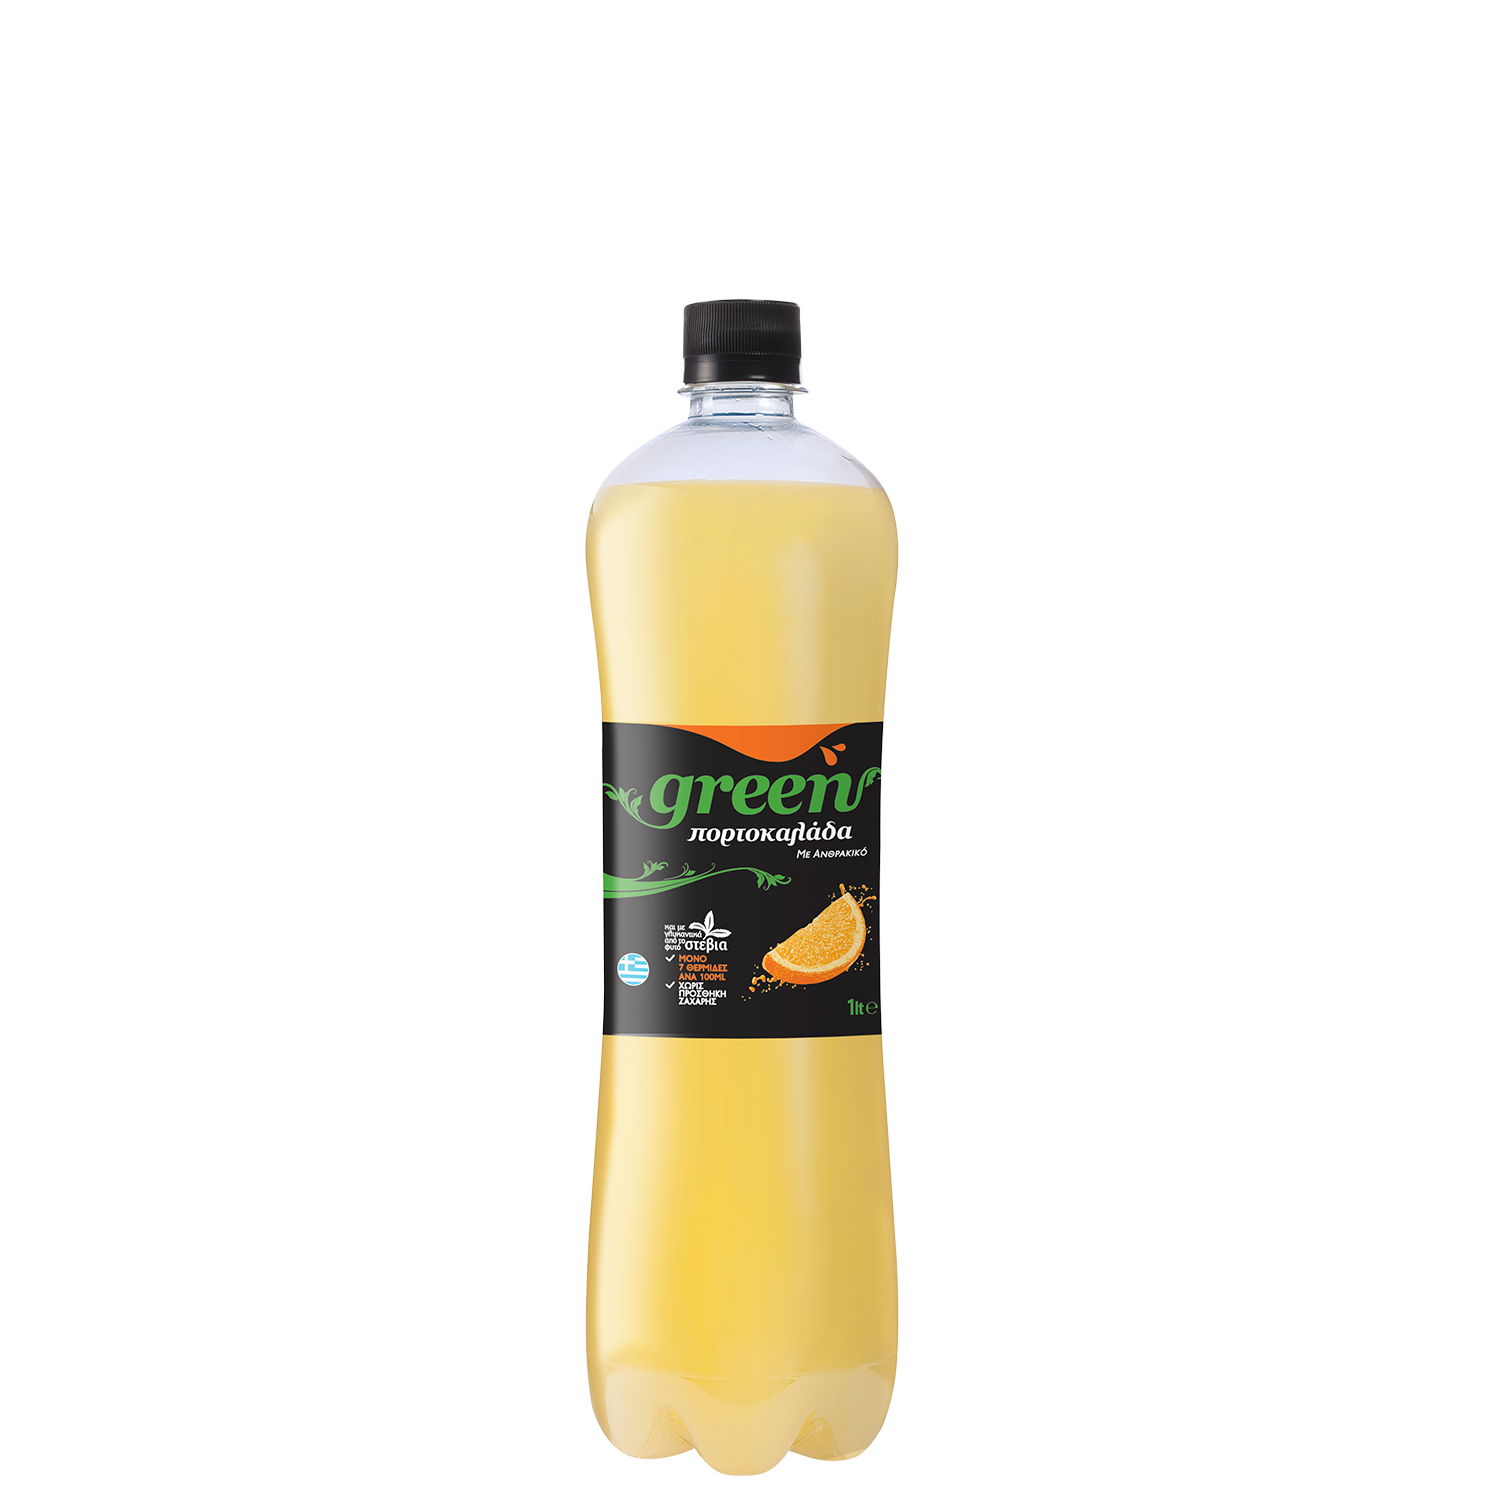 Green Orange - PET - 1lt Bottle